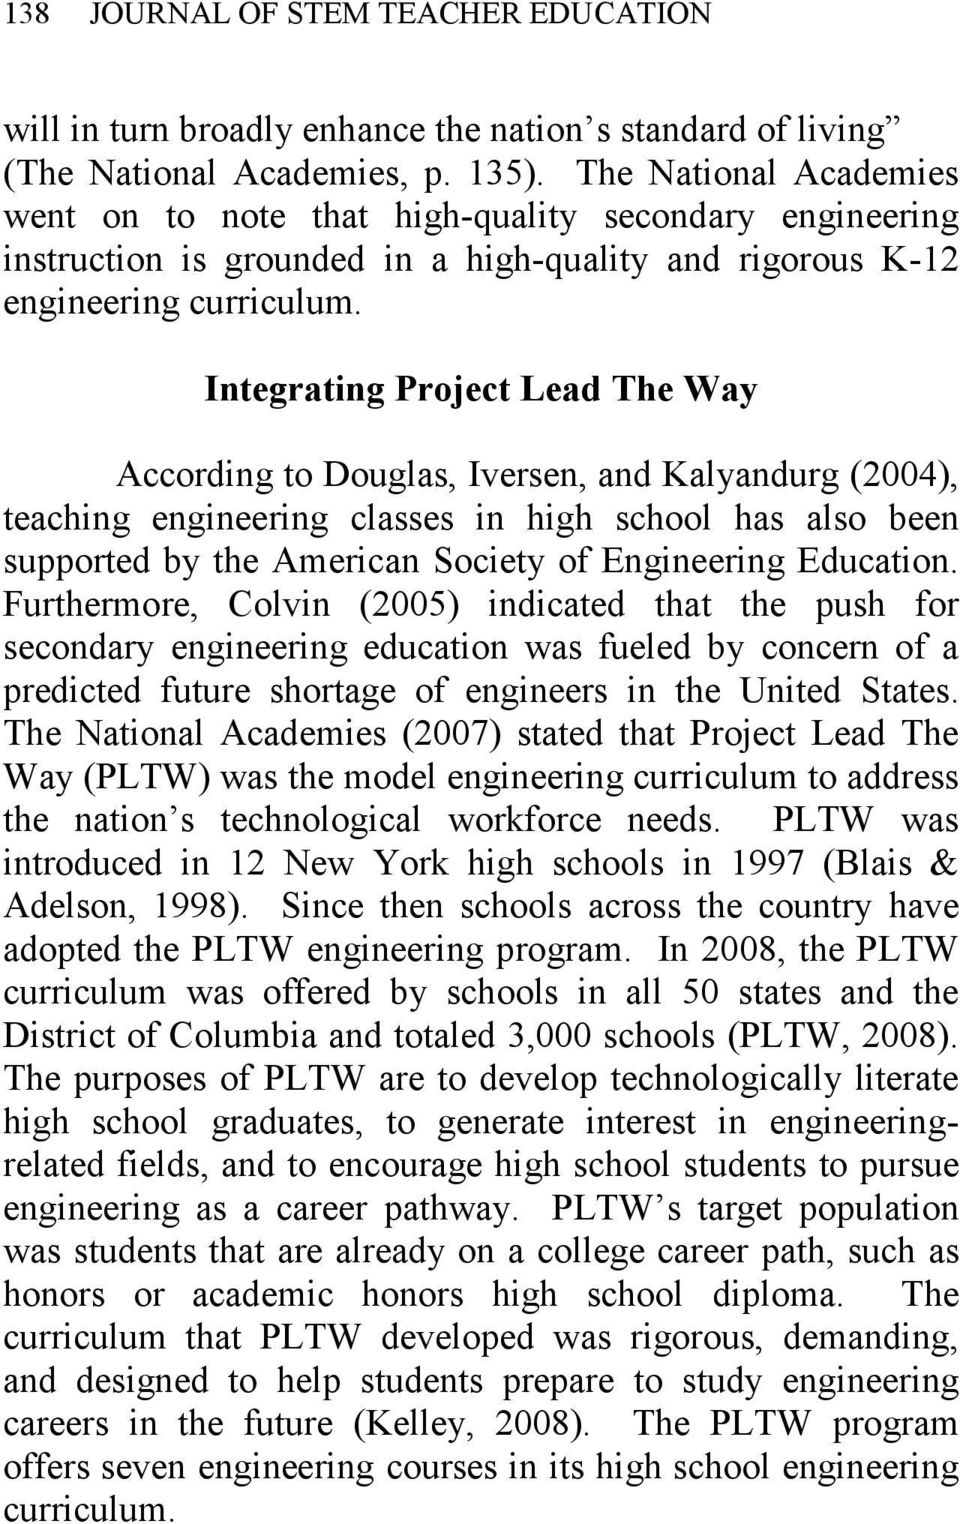 Integrating Project Lead The Way According to Douglas, Iversen, and Kalyandurg (2004), teaching engineering classes in high school has also been supported by the American Society of Engineering